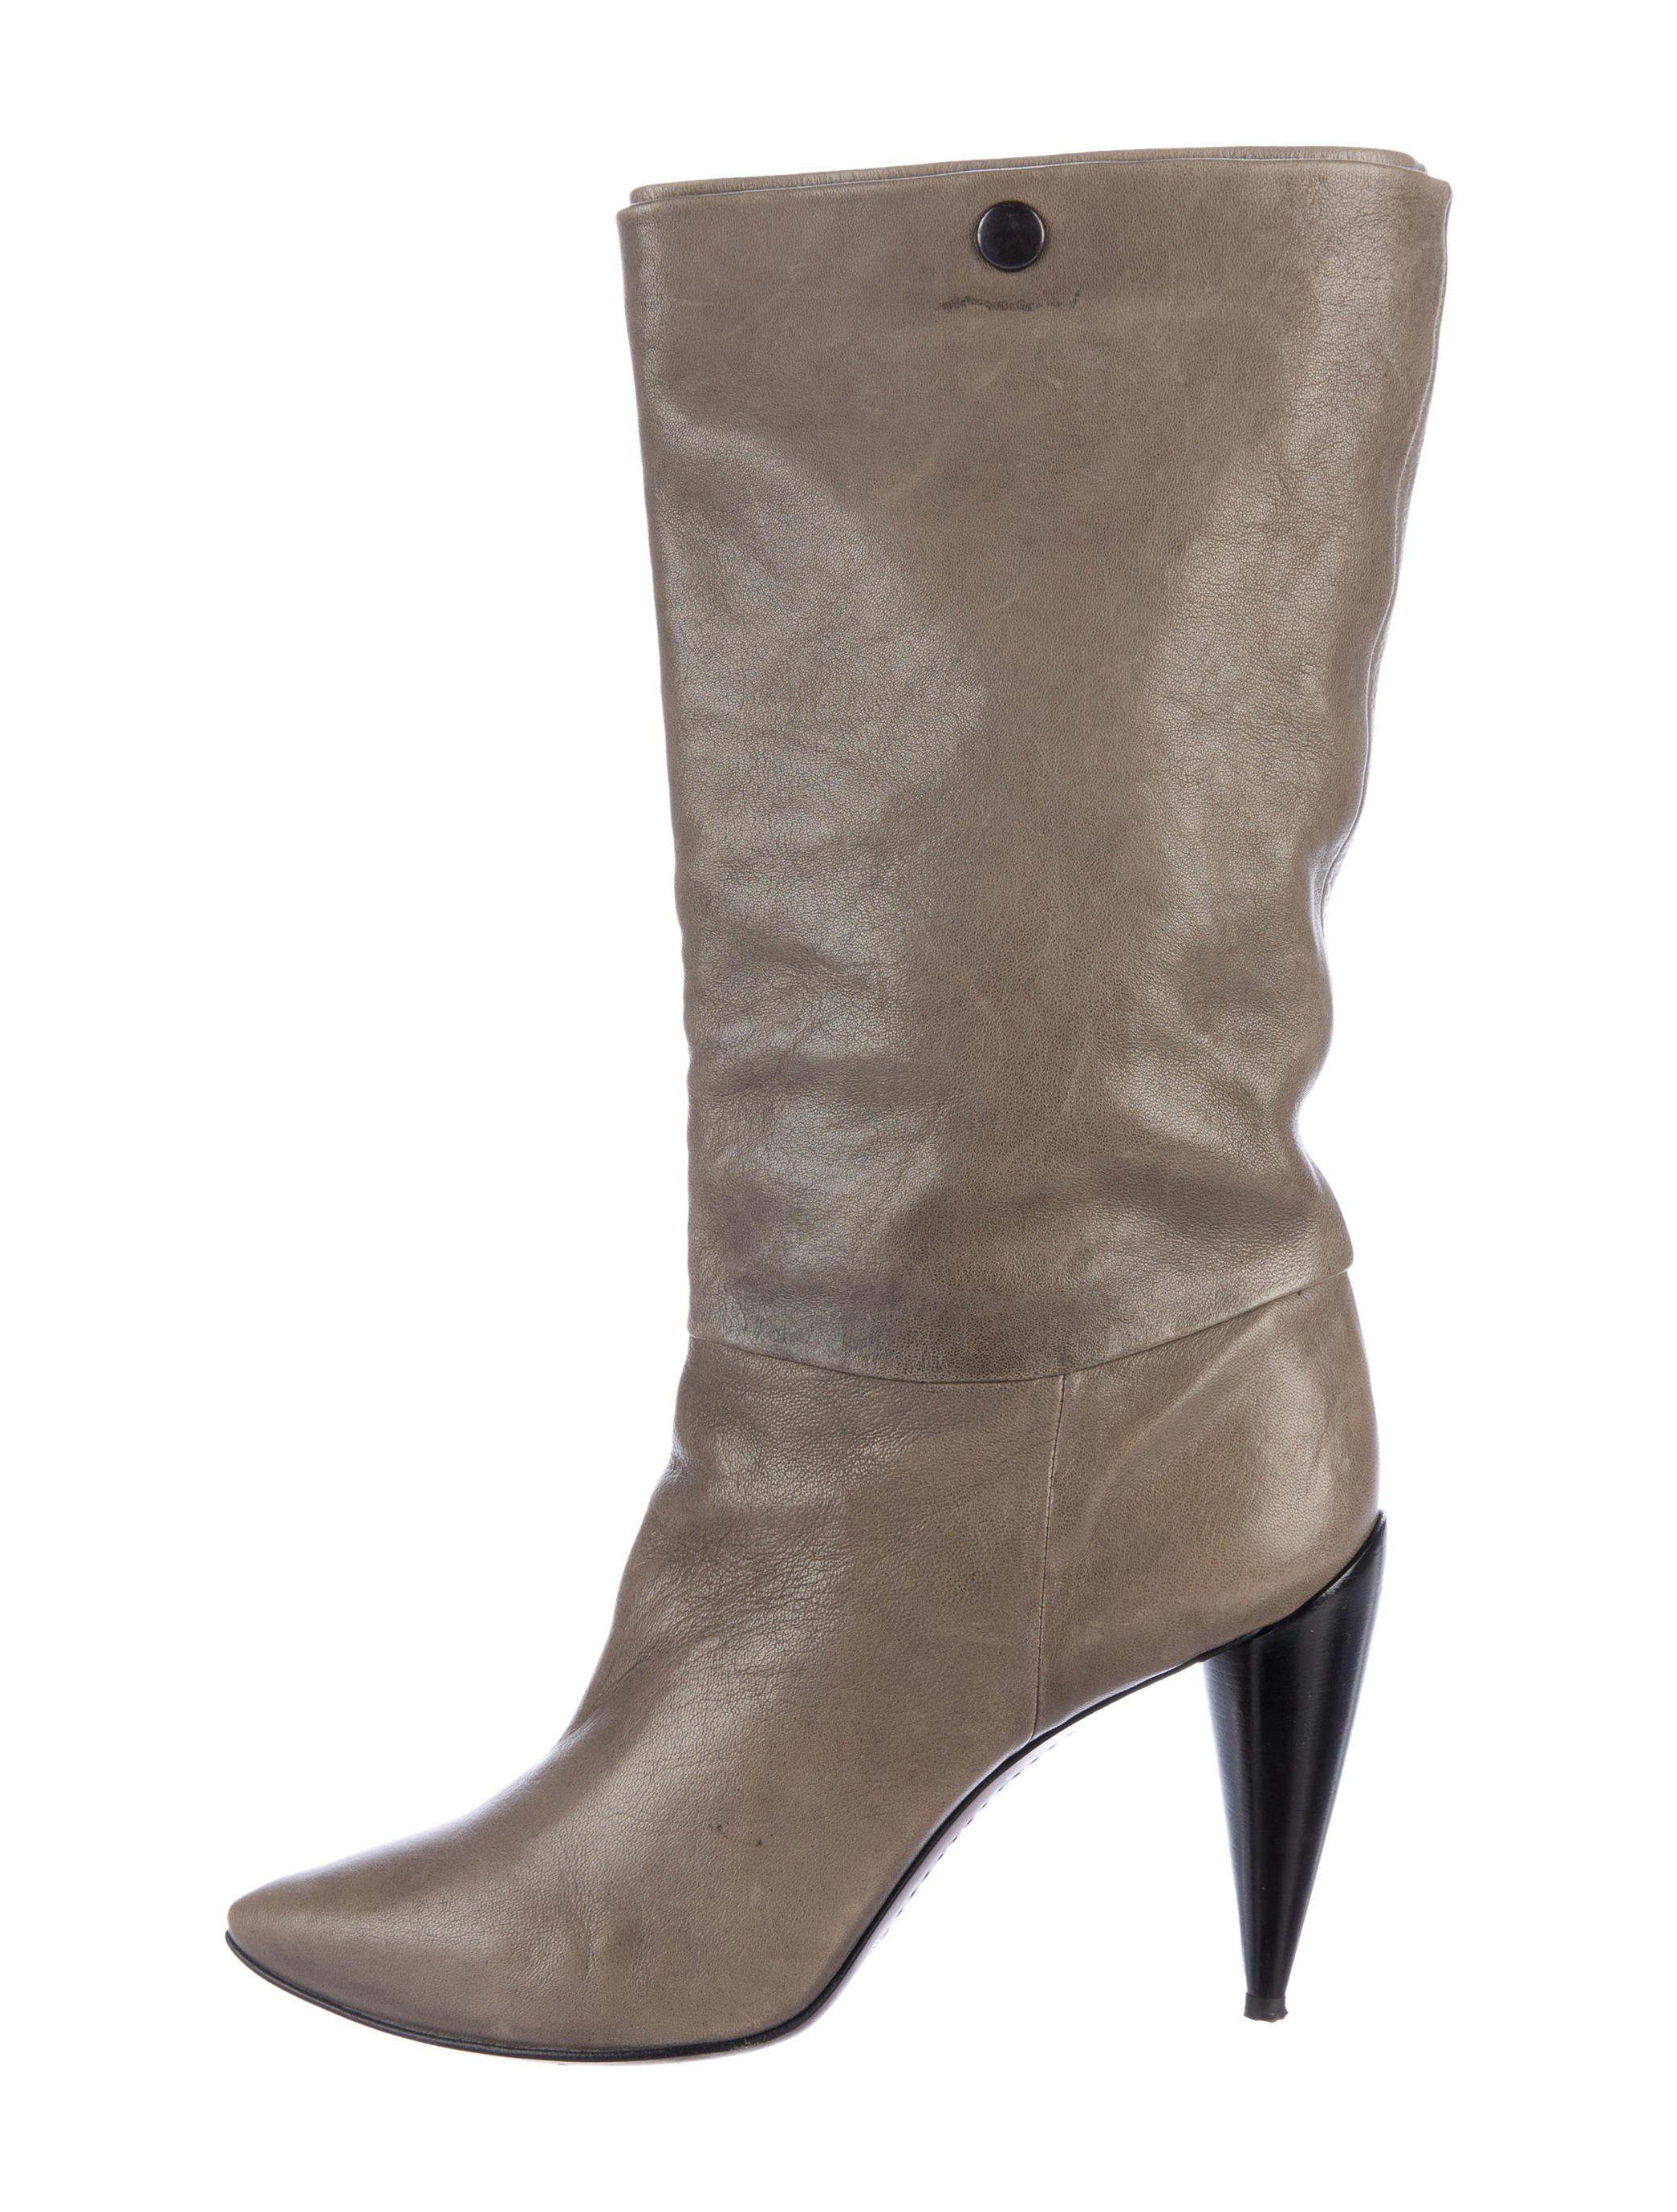 Costume National Suede Mid-Calf Boots shop for sale outlet low shipping cheap sale clearance foWBWkXjt9